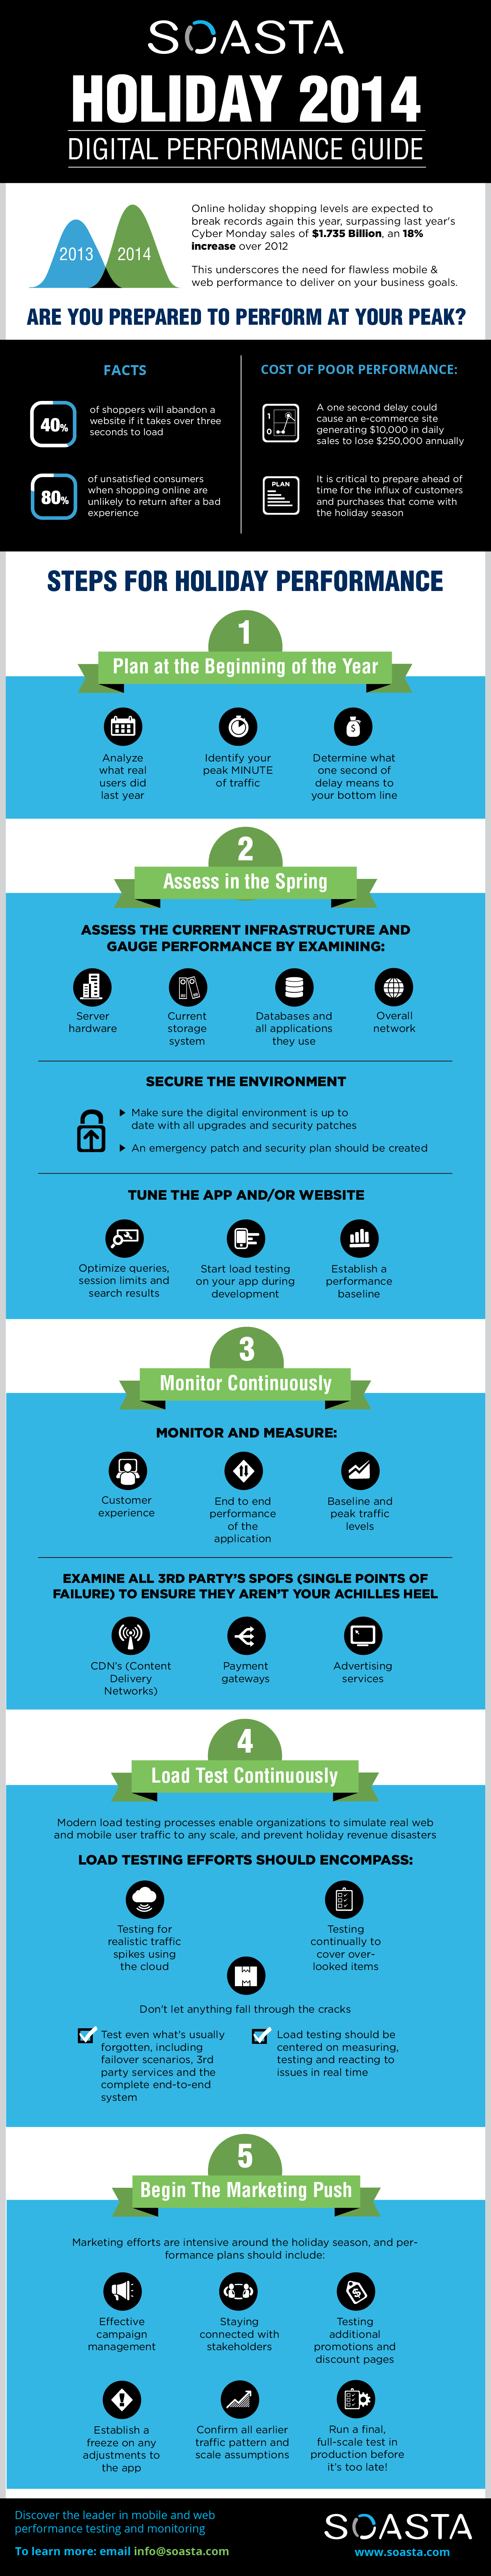 SOASTA Holiday 2014 Digital Performance Guide (Graphic: Business Wire)